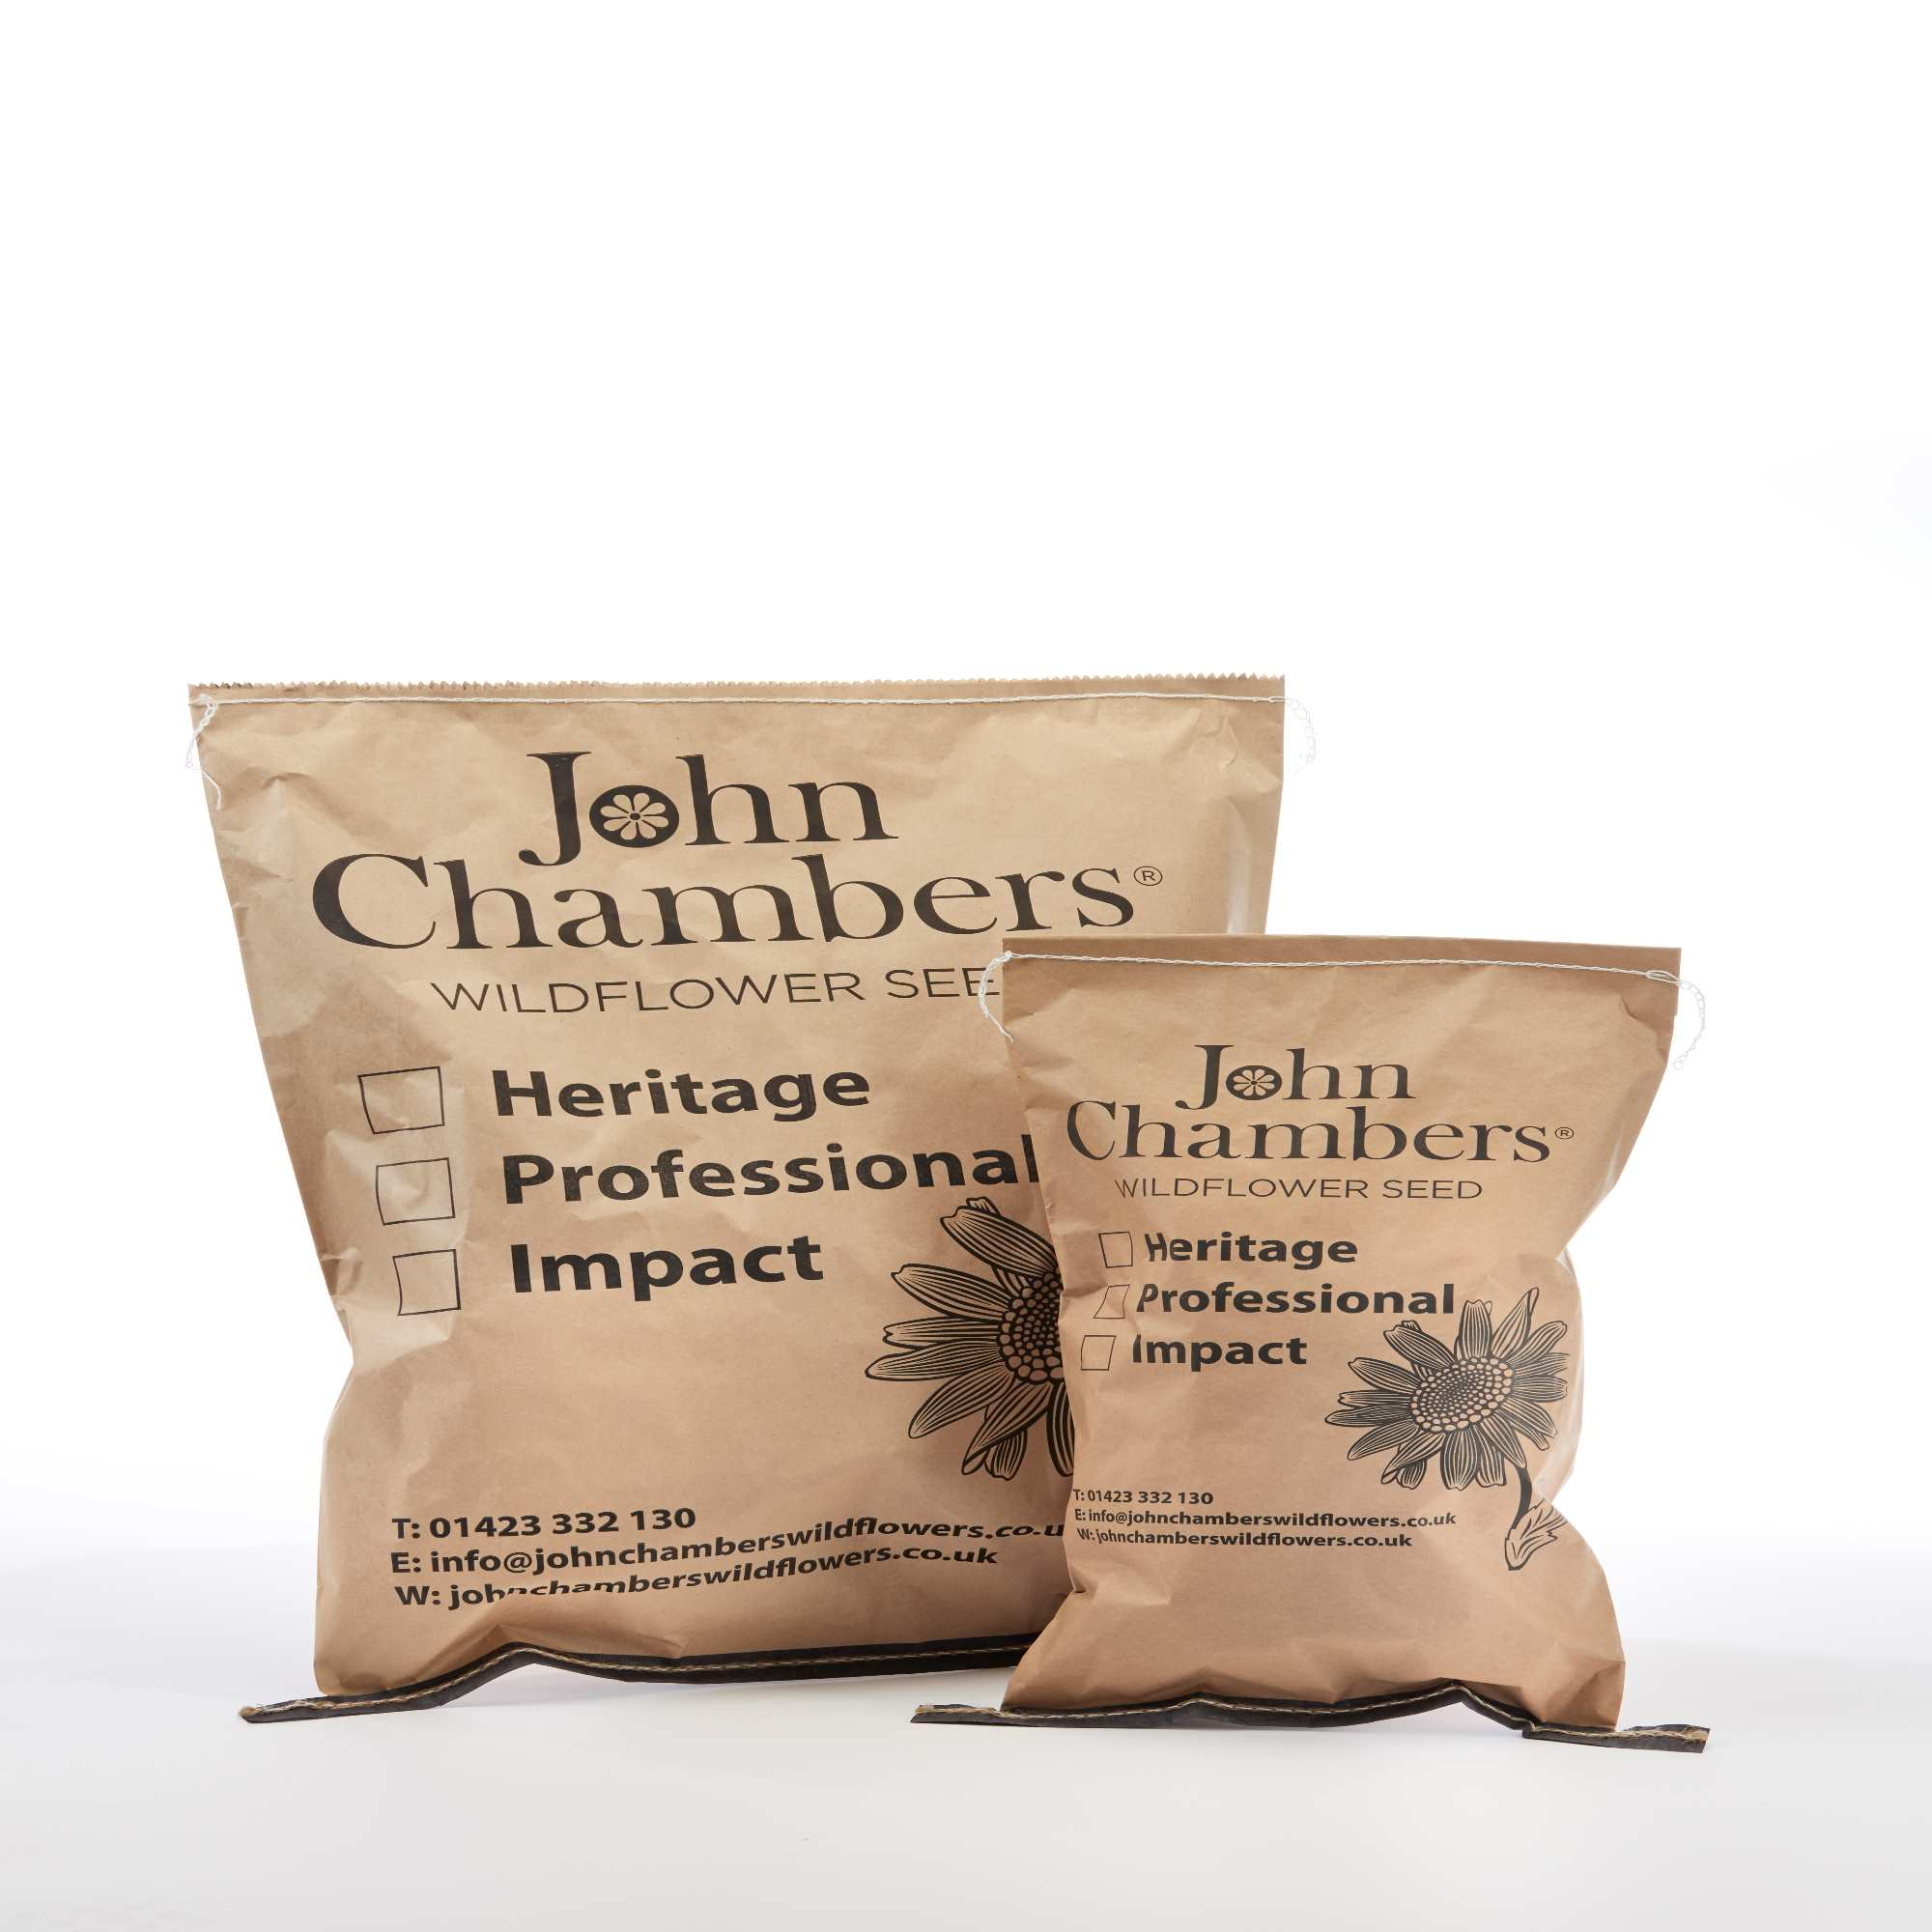 John Chambers Wildflower Seeds